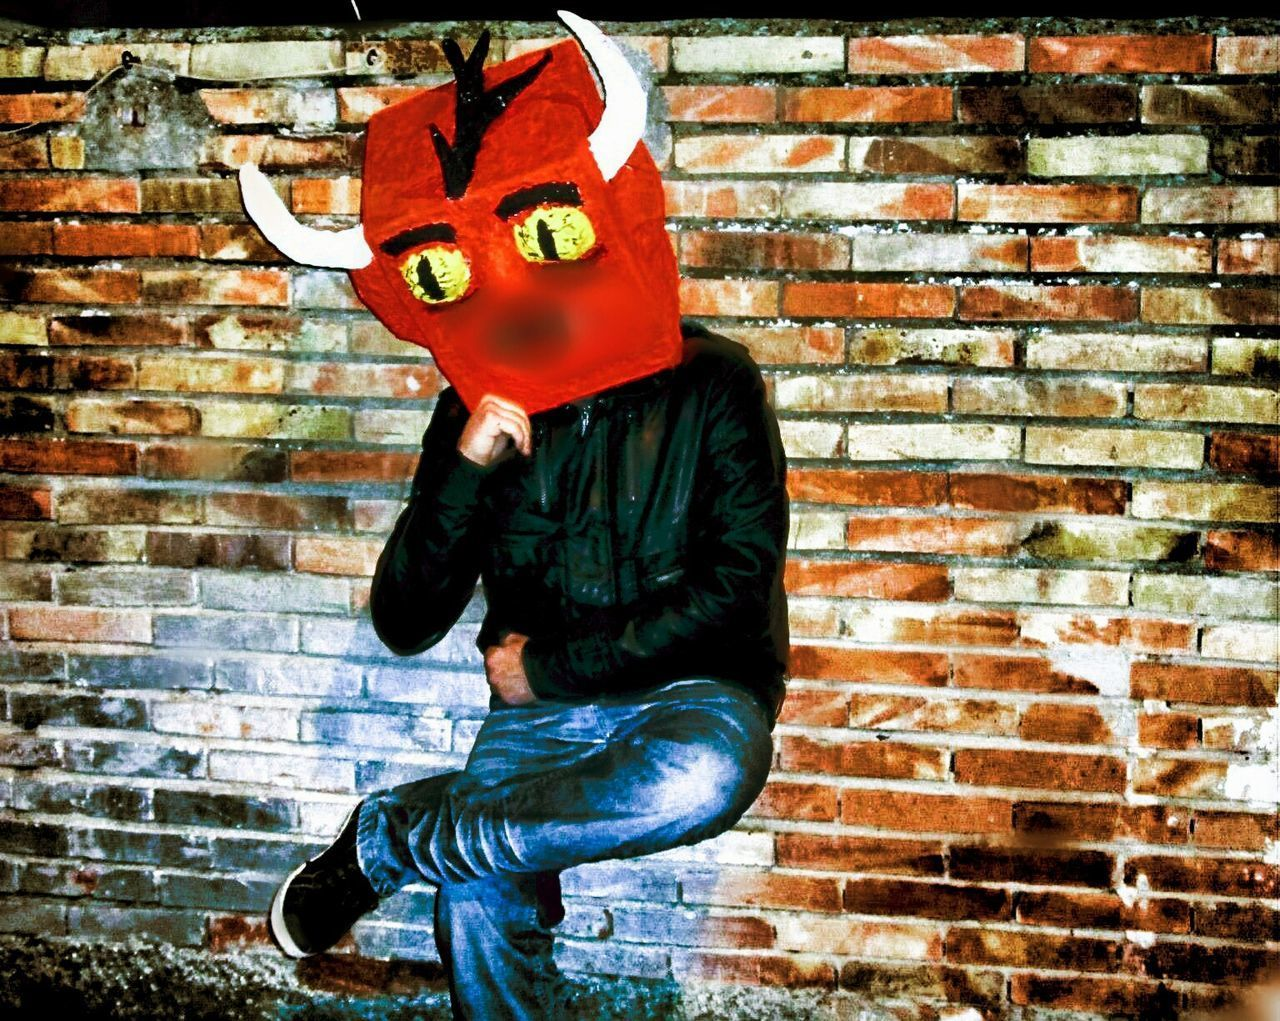 brick wall, mask - disguise, one person, casual clothing, disguise, full length, red, real people, day, outdoors, one man only, halloween, people, adult, only men, adults only